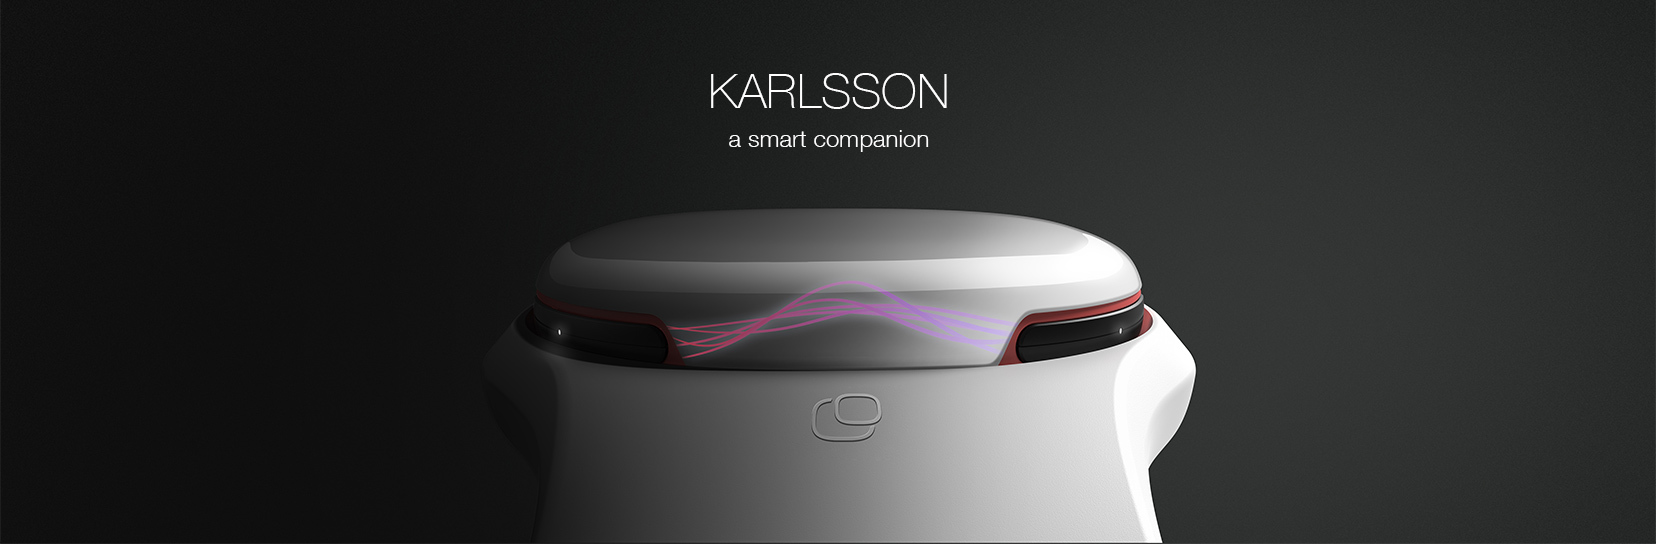 Teaser_pearl-creative-industrial-design-study-karlsson-concept_intro_1656x544